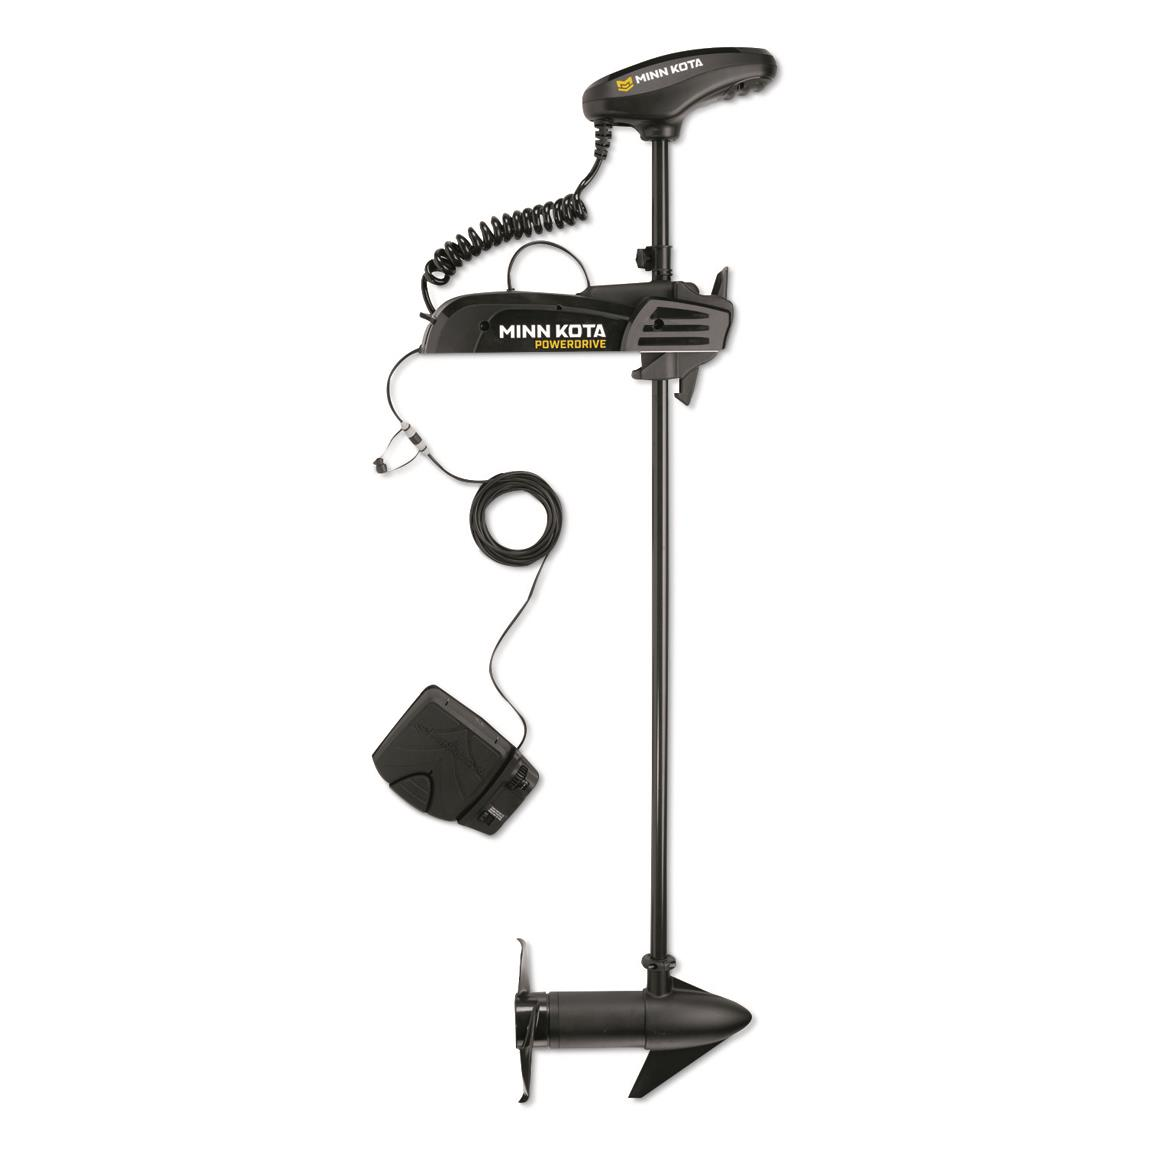 "Minn Kota PowerDrive 55-Lb. Trolling Motor, 12V, 54"" Shaft with Battery Charger"